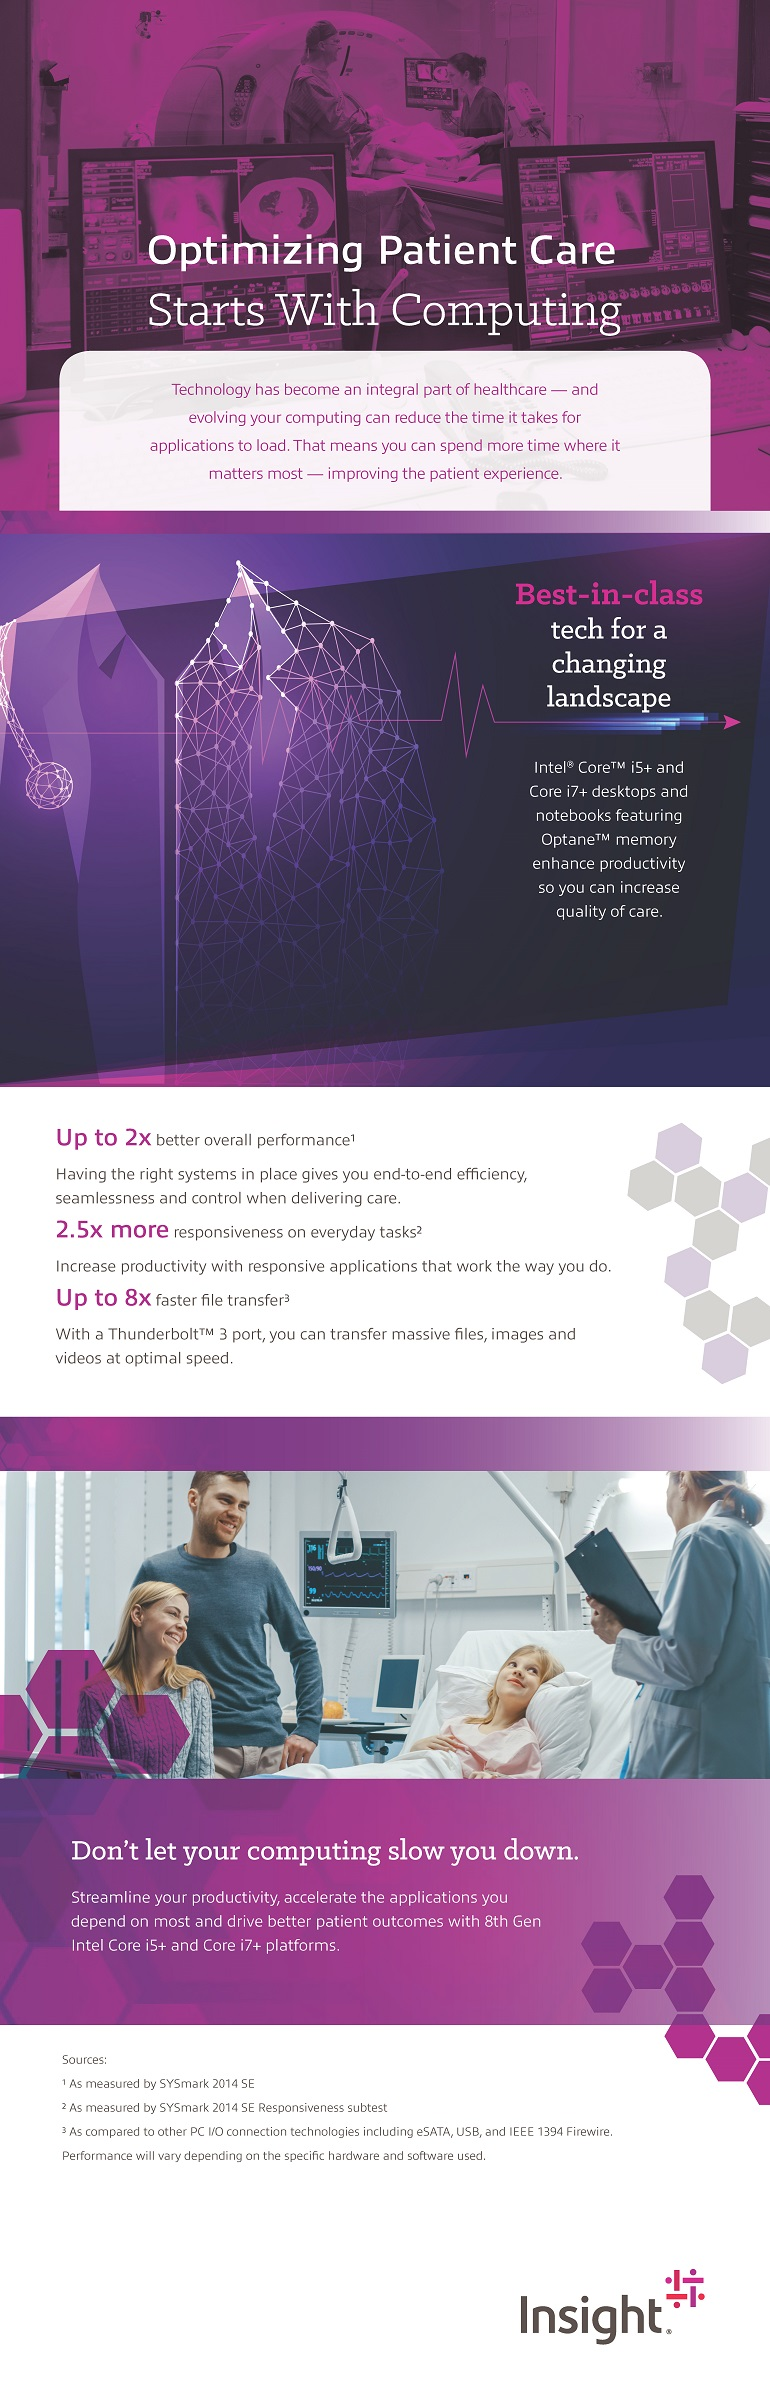 Infographic for Optimizing Patient Care Starts With Computing